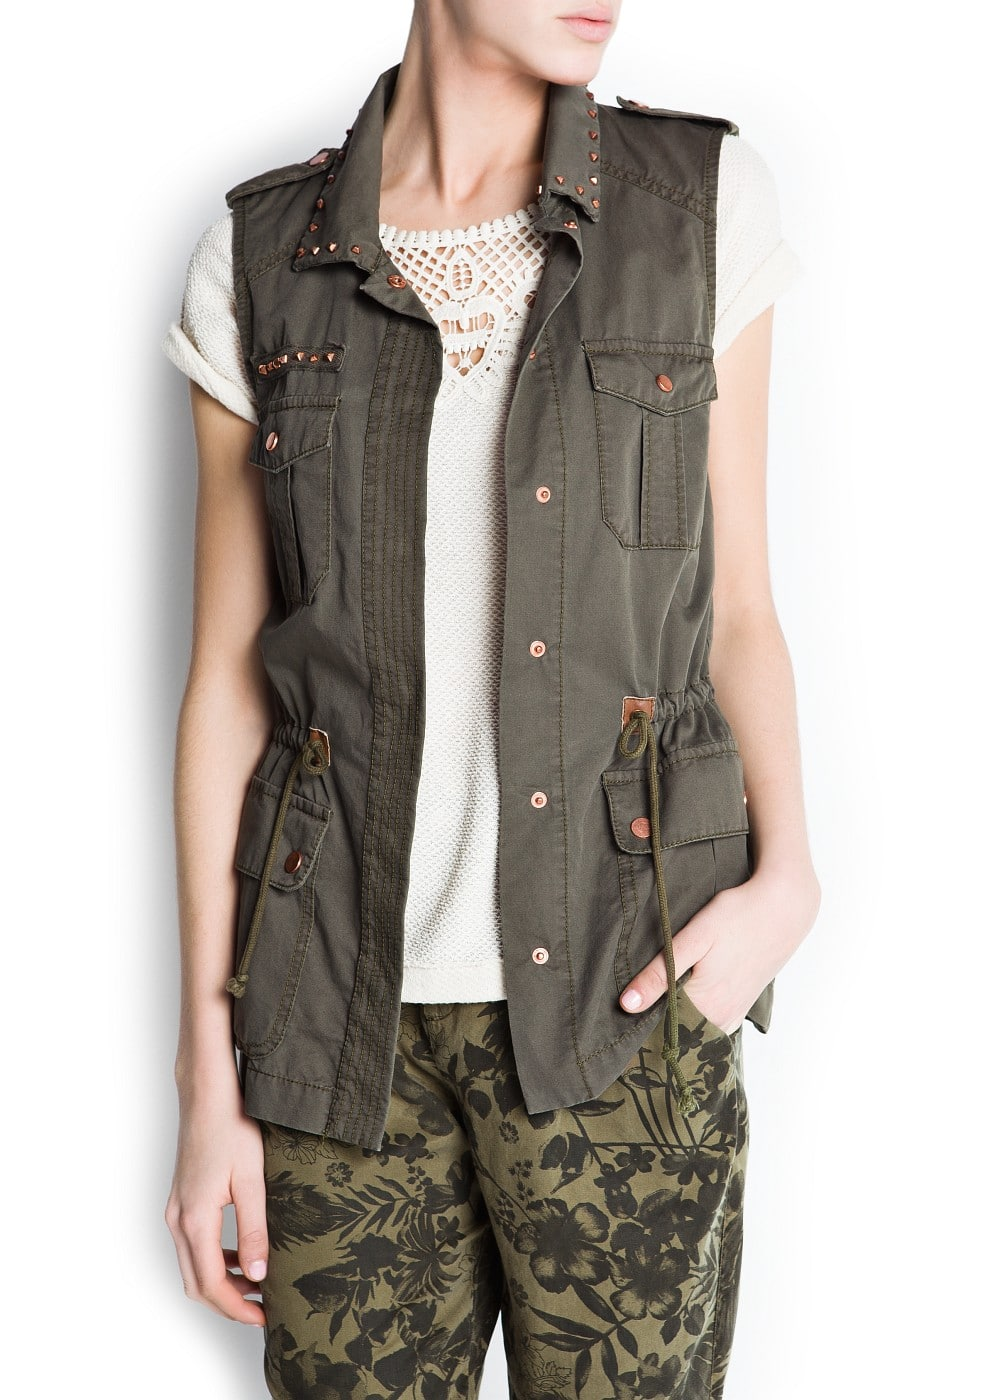 Studded military style vest